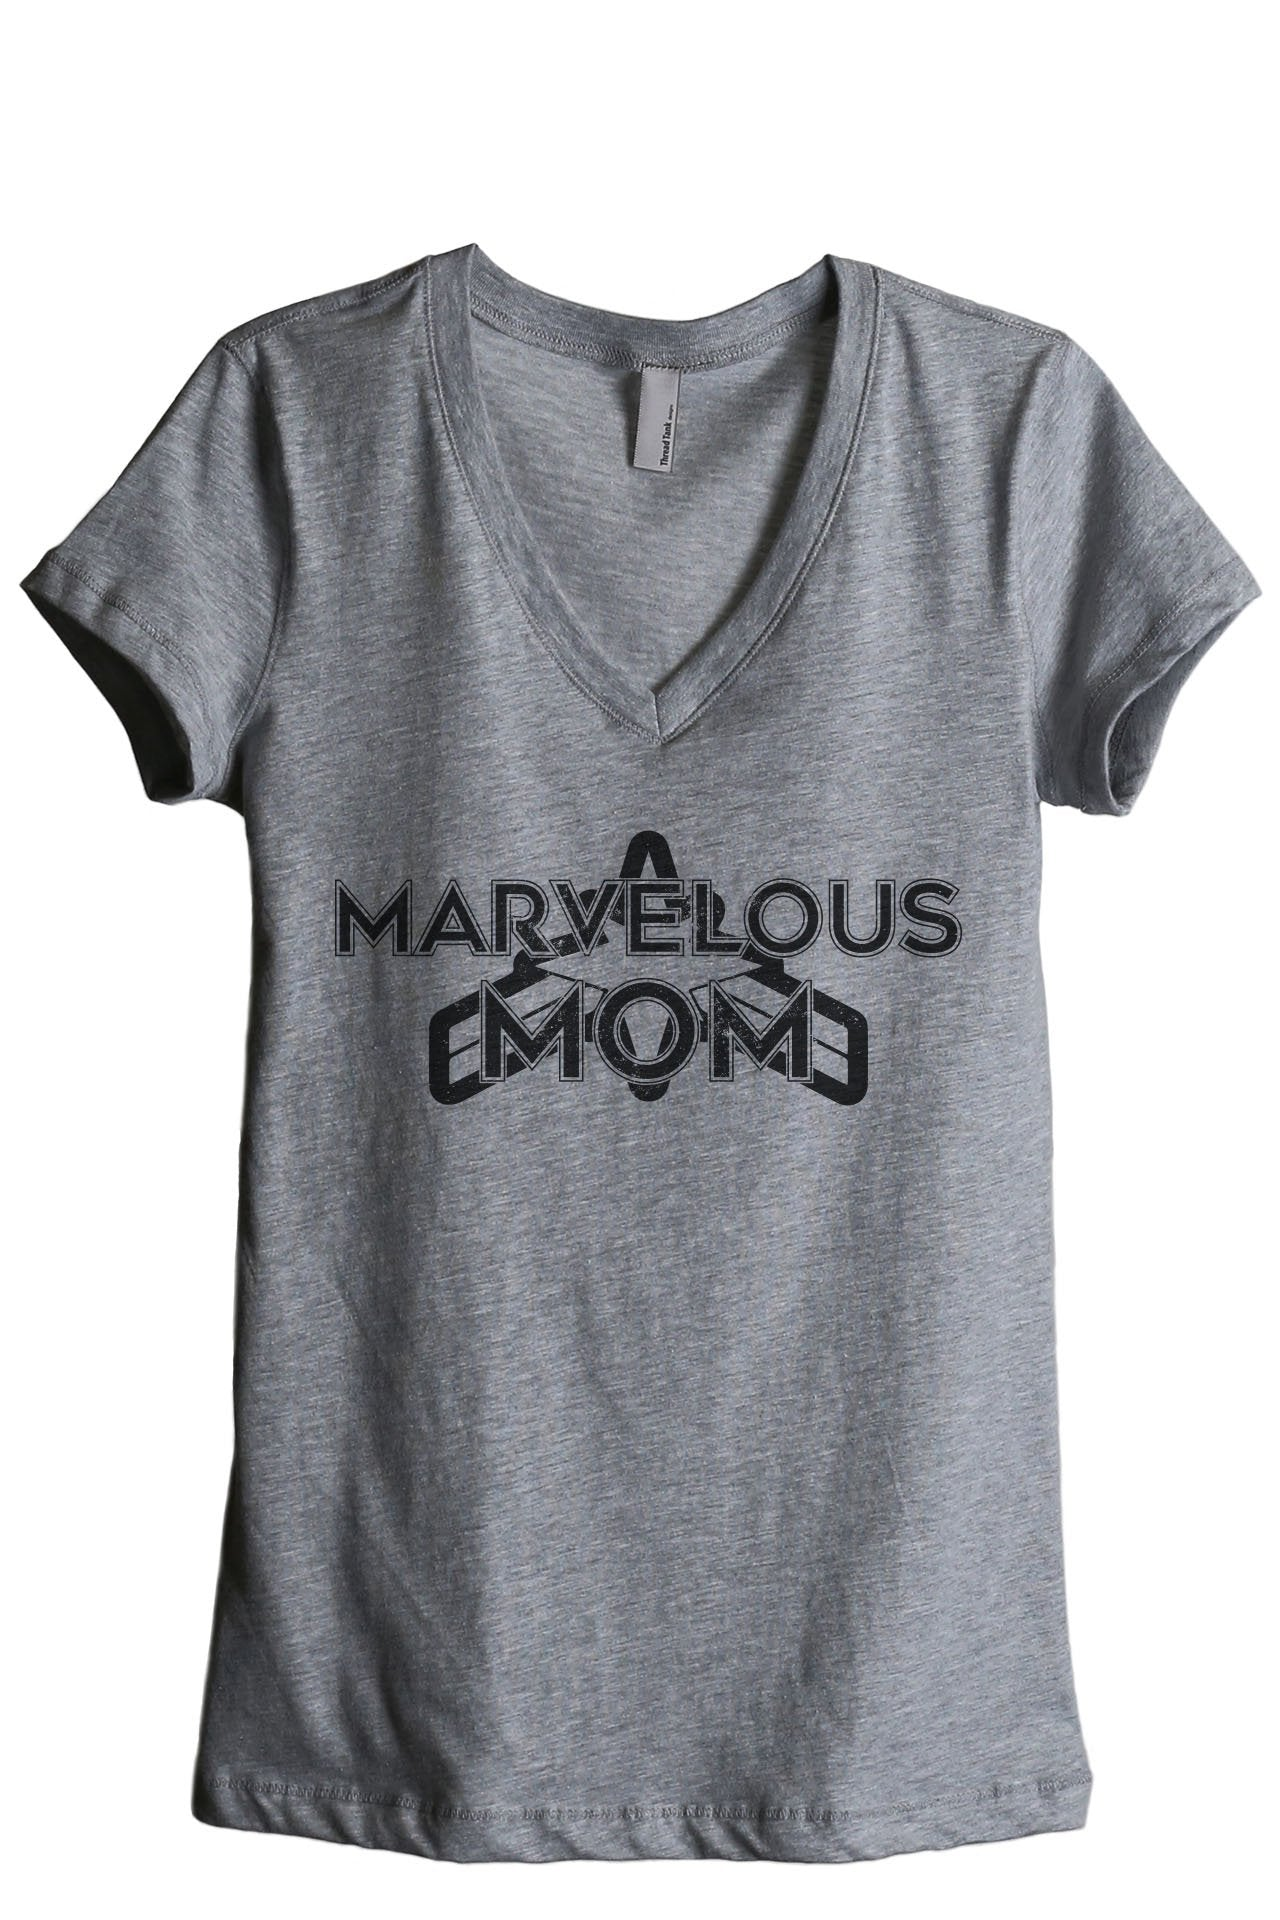 Captain Marvelous Mom - Thread Tank | Stories You Can Wear | T-Shirts, Tank Tops and Sweatshirts